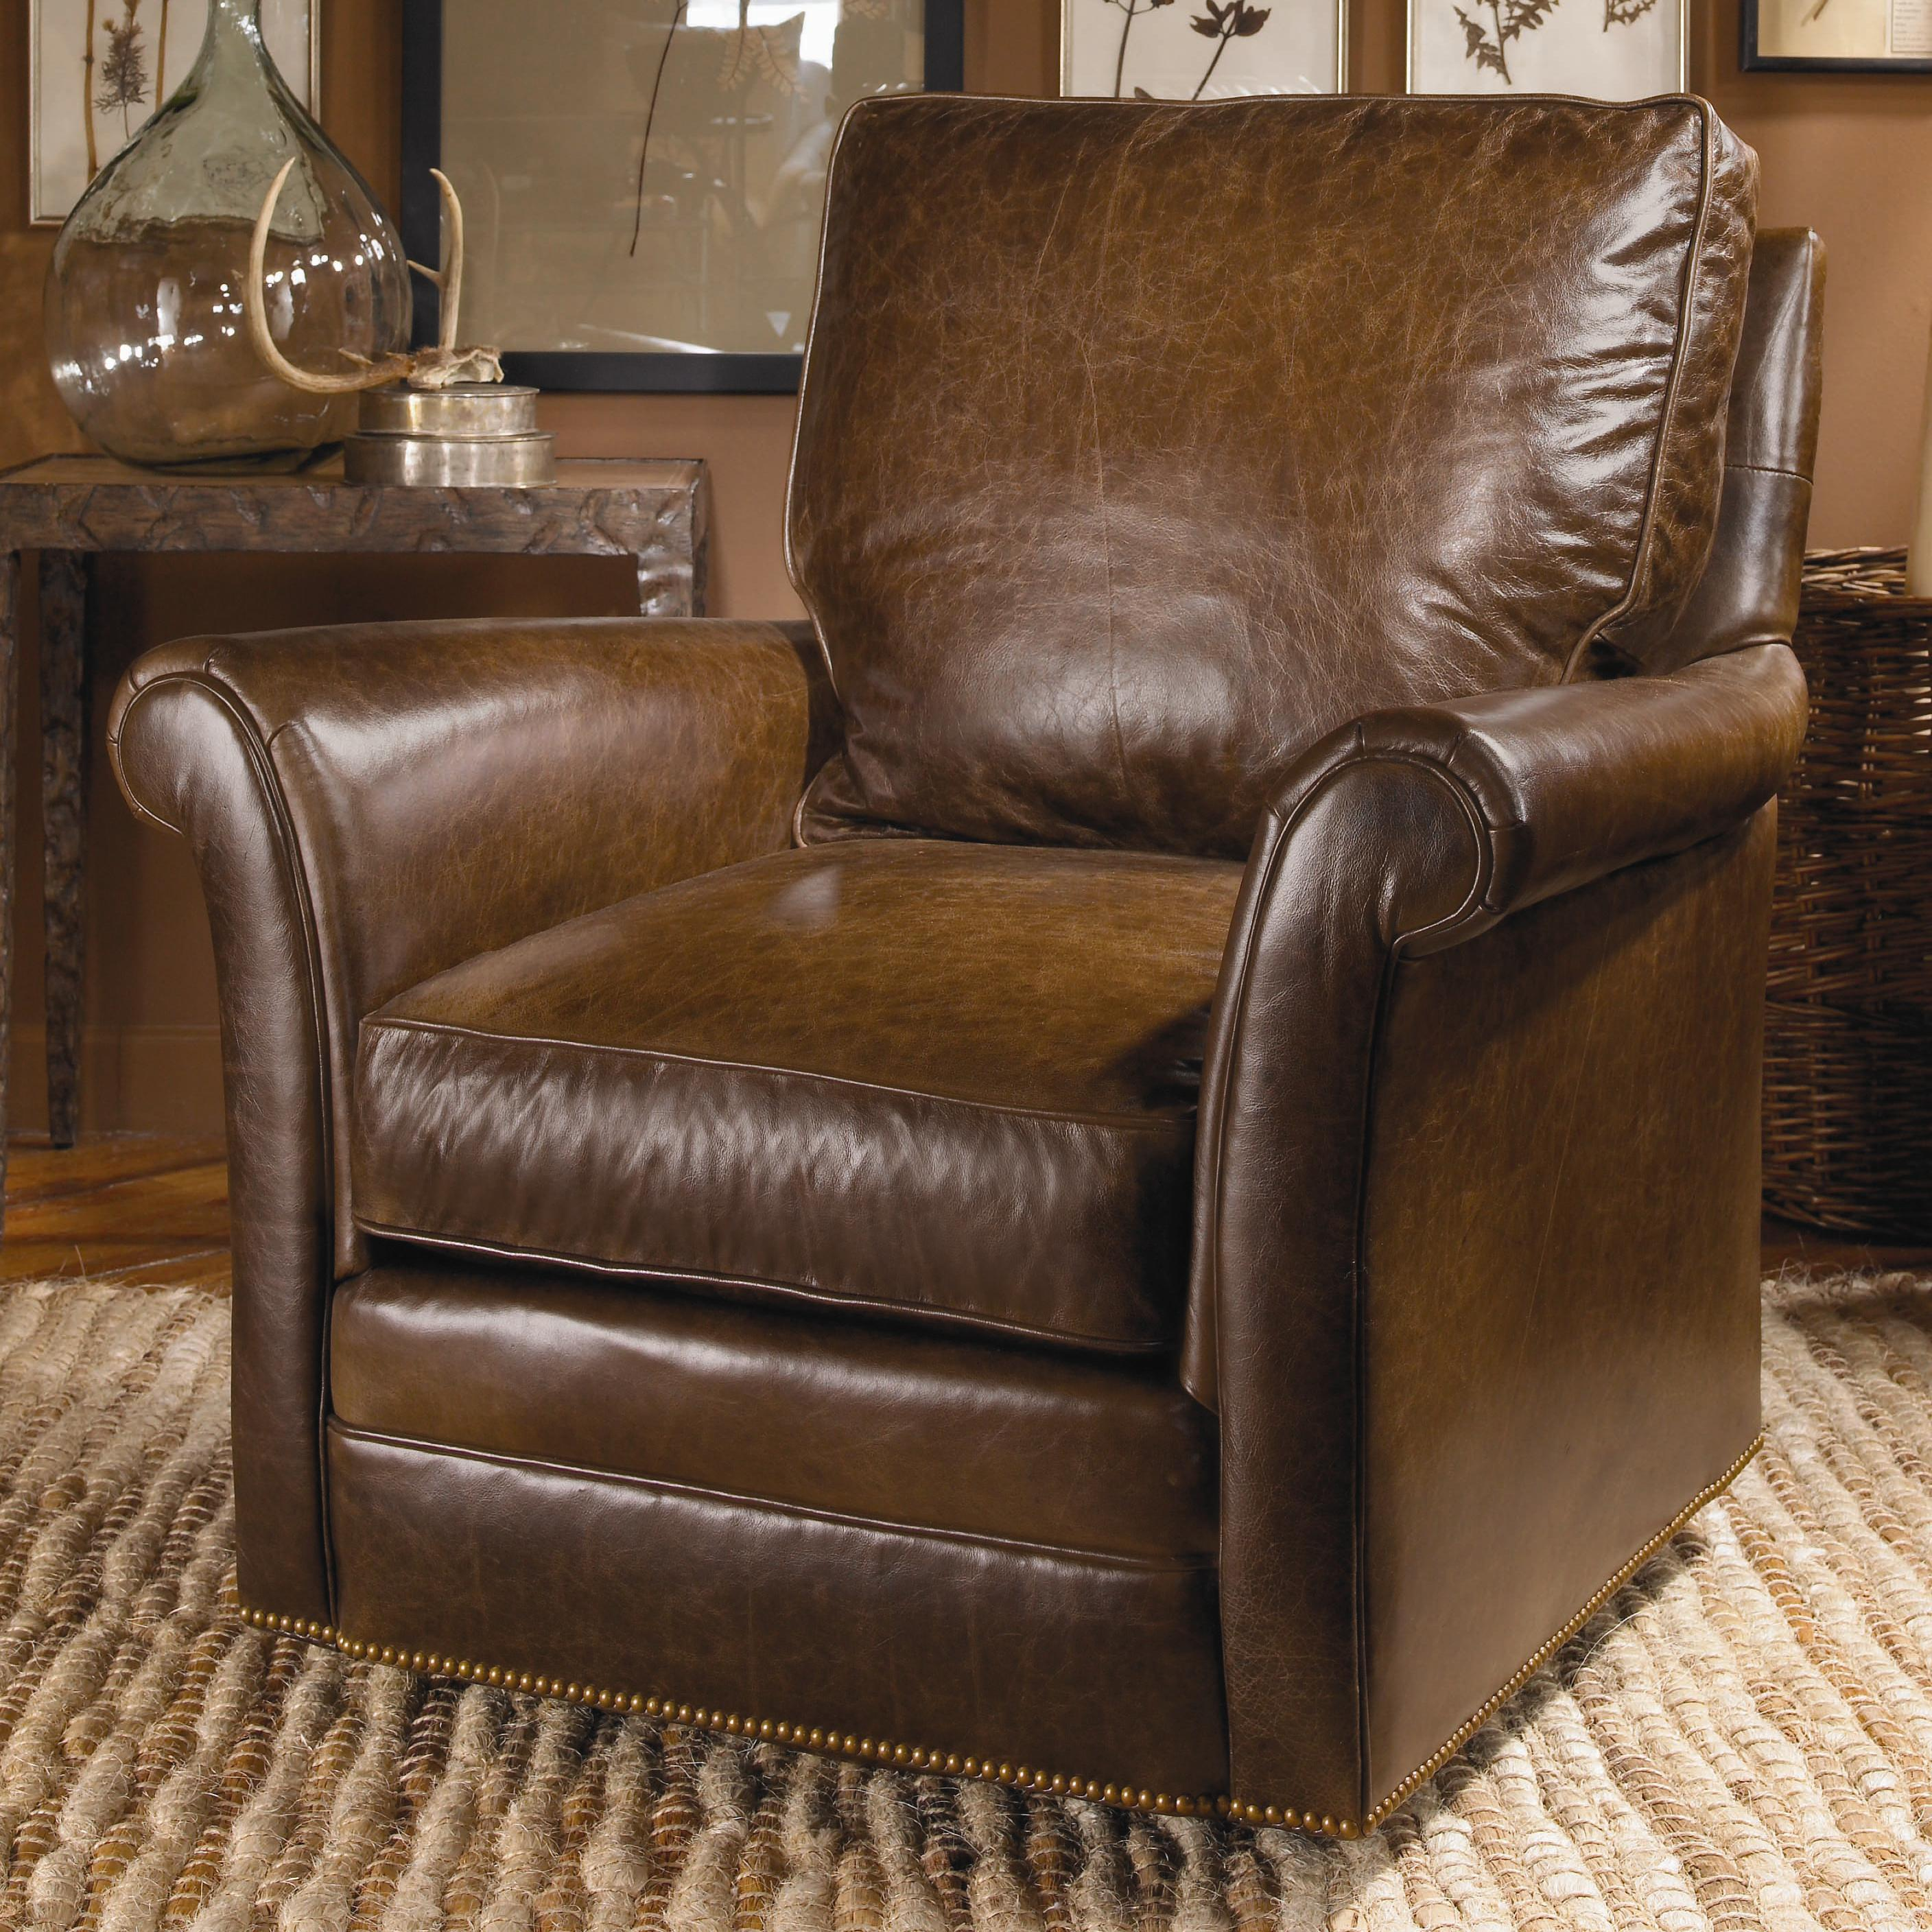 Swivel Chairs Century Traditional Swivel Chair  by Century at Baer's Furniture